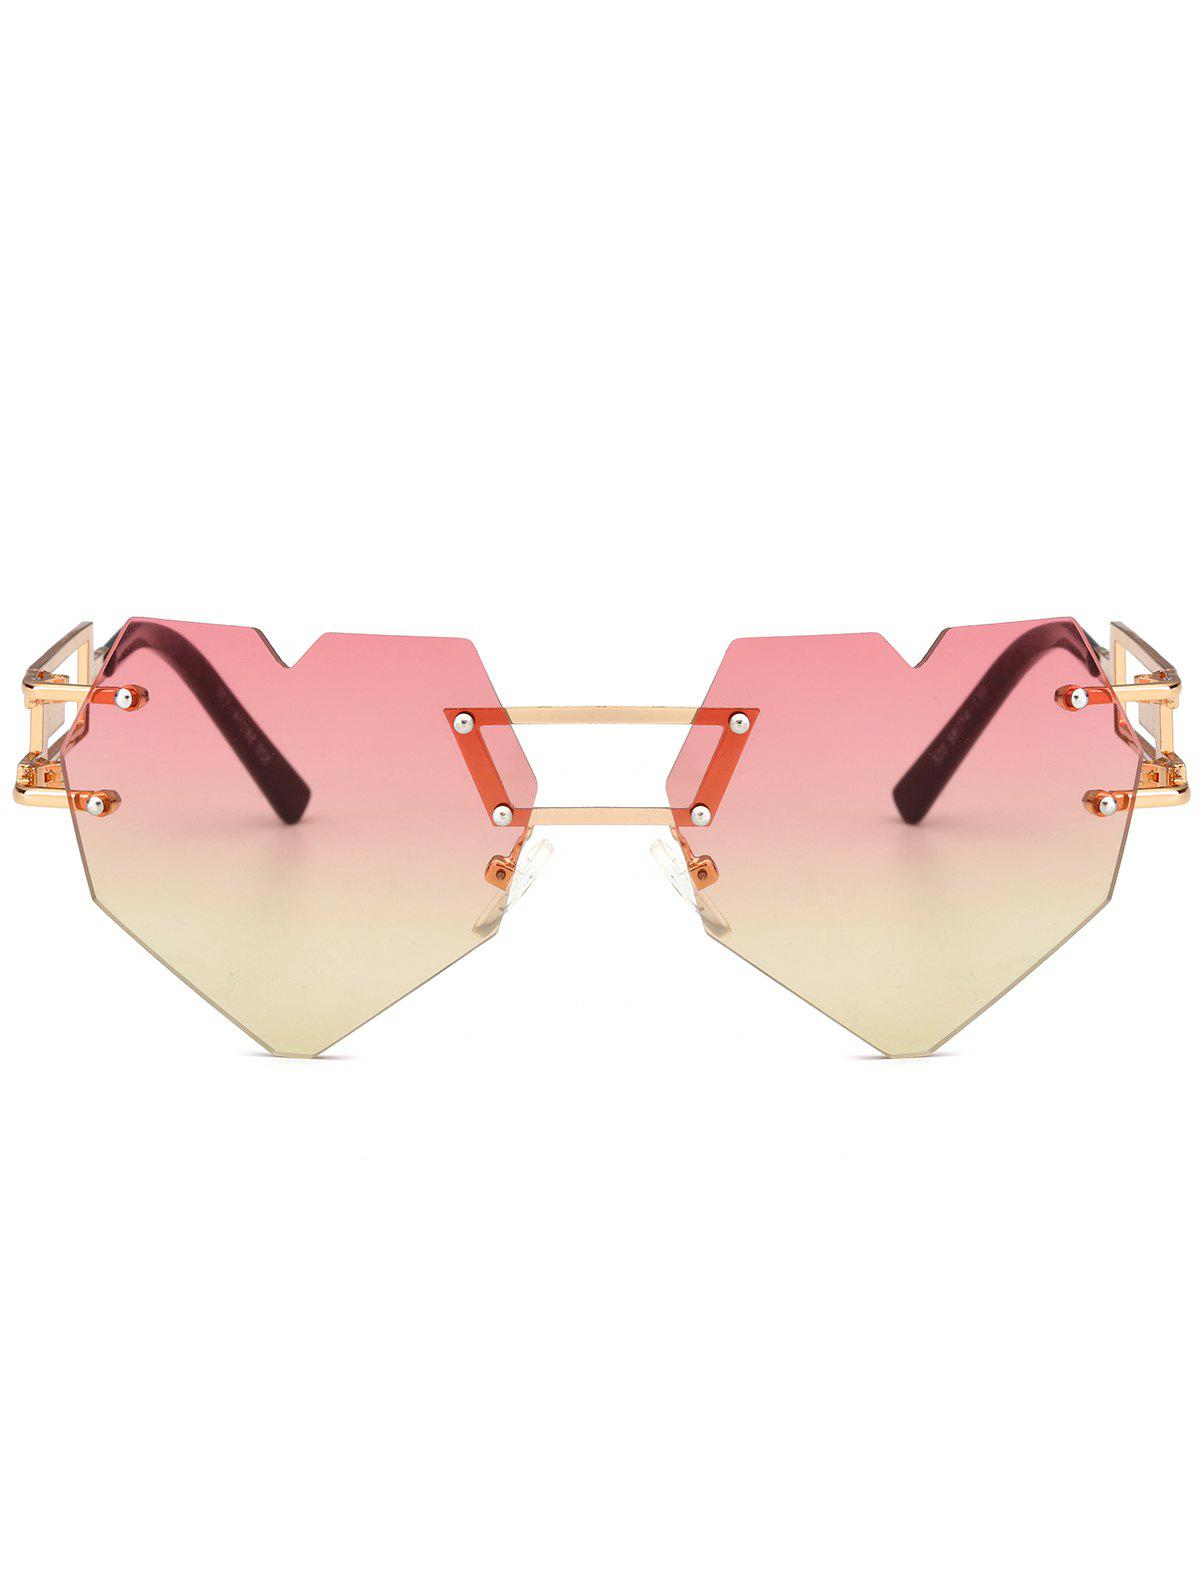 Outdoor Love Heart Decorated Hollow Frame Rimless Sunglasses - YELLOW/RED